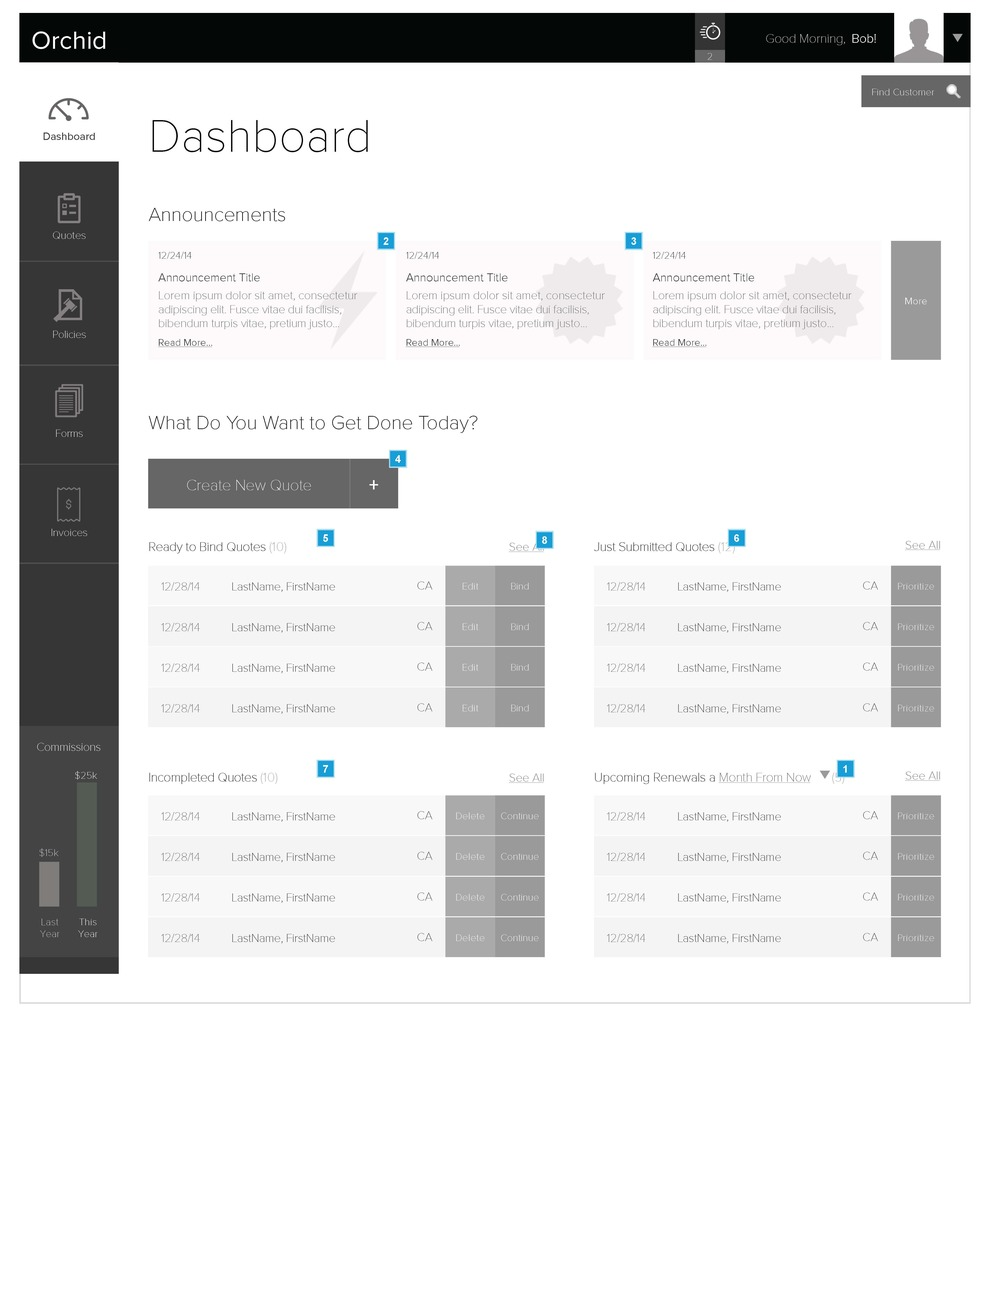 Dashboard of the agent portal based on the user interview and user flow research